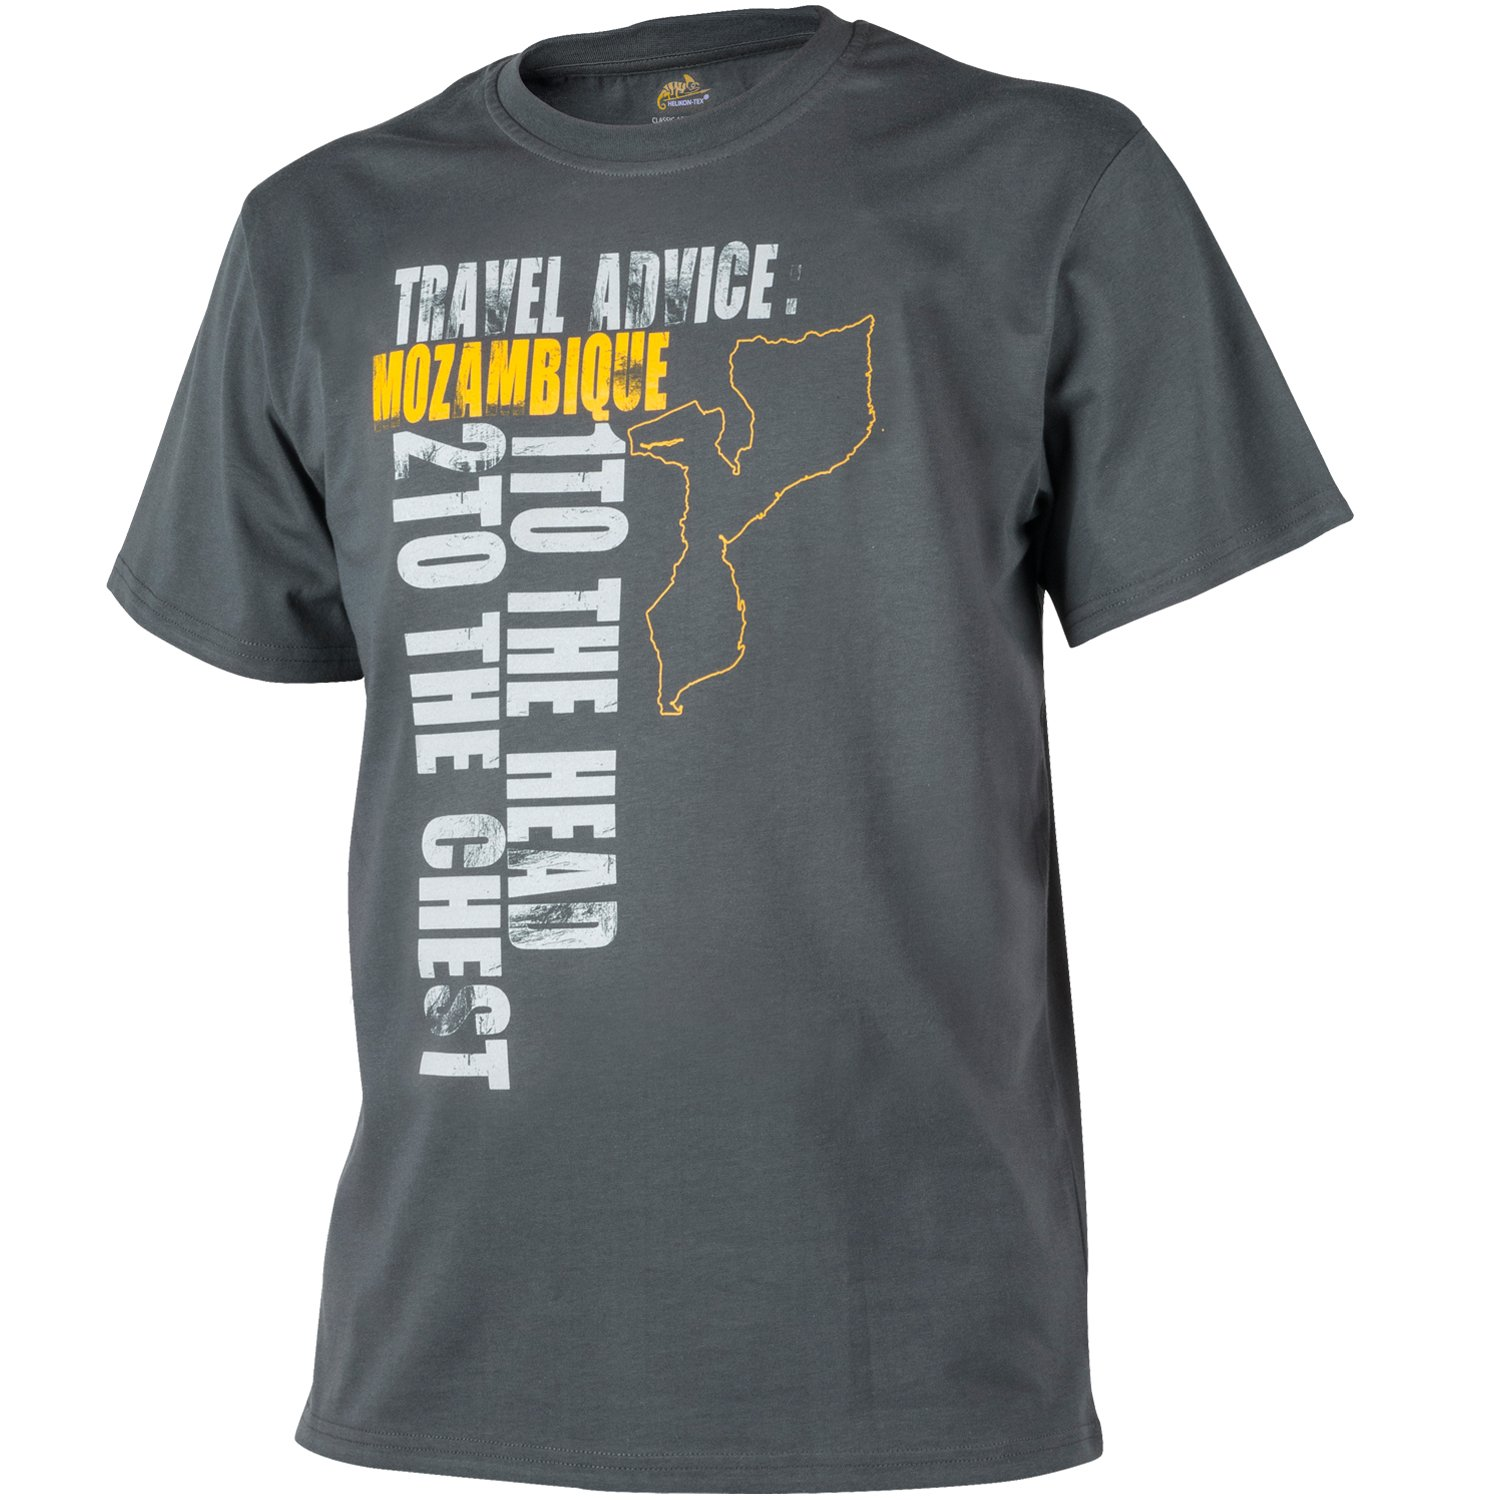 Mozambique T-Shirt Shadow Gris Helikon Hommes Travel Advice